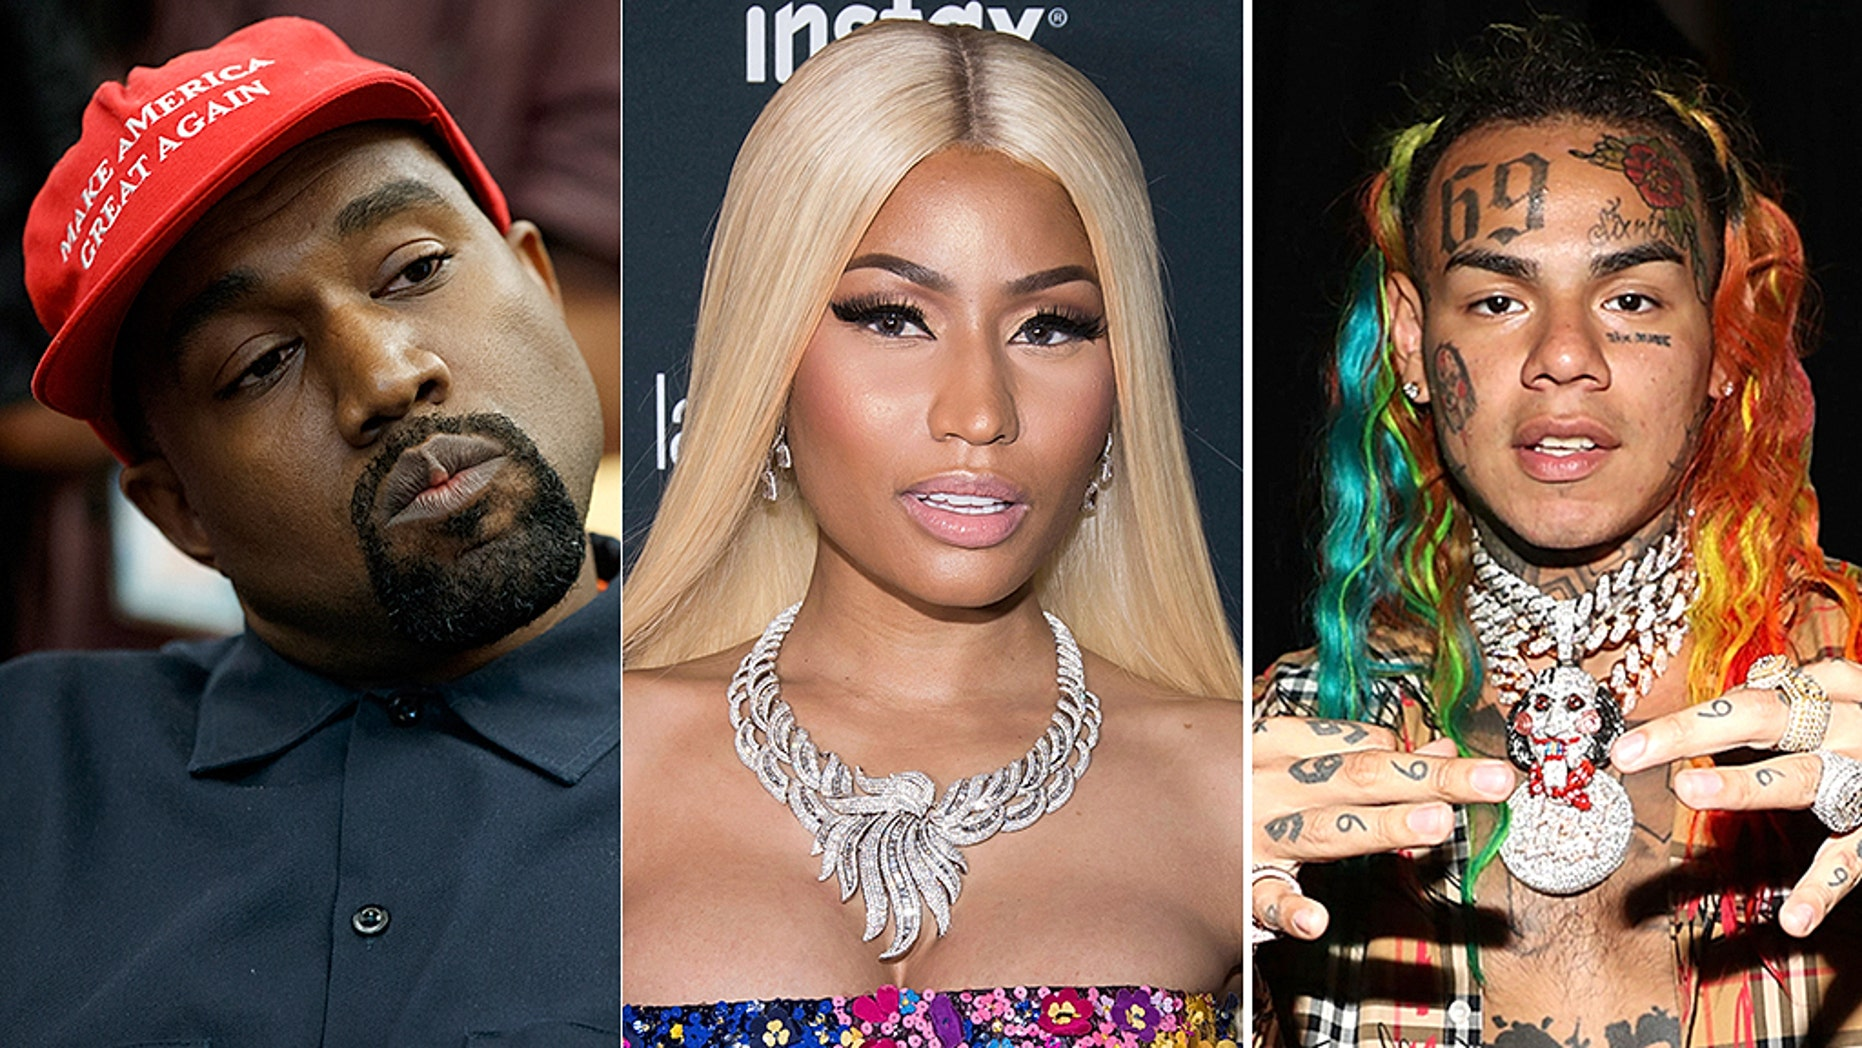 Kanye West, Nicki Minaj and Tekashi 6ix9ine were filming a music video when a shooting occurred.